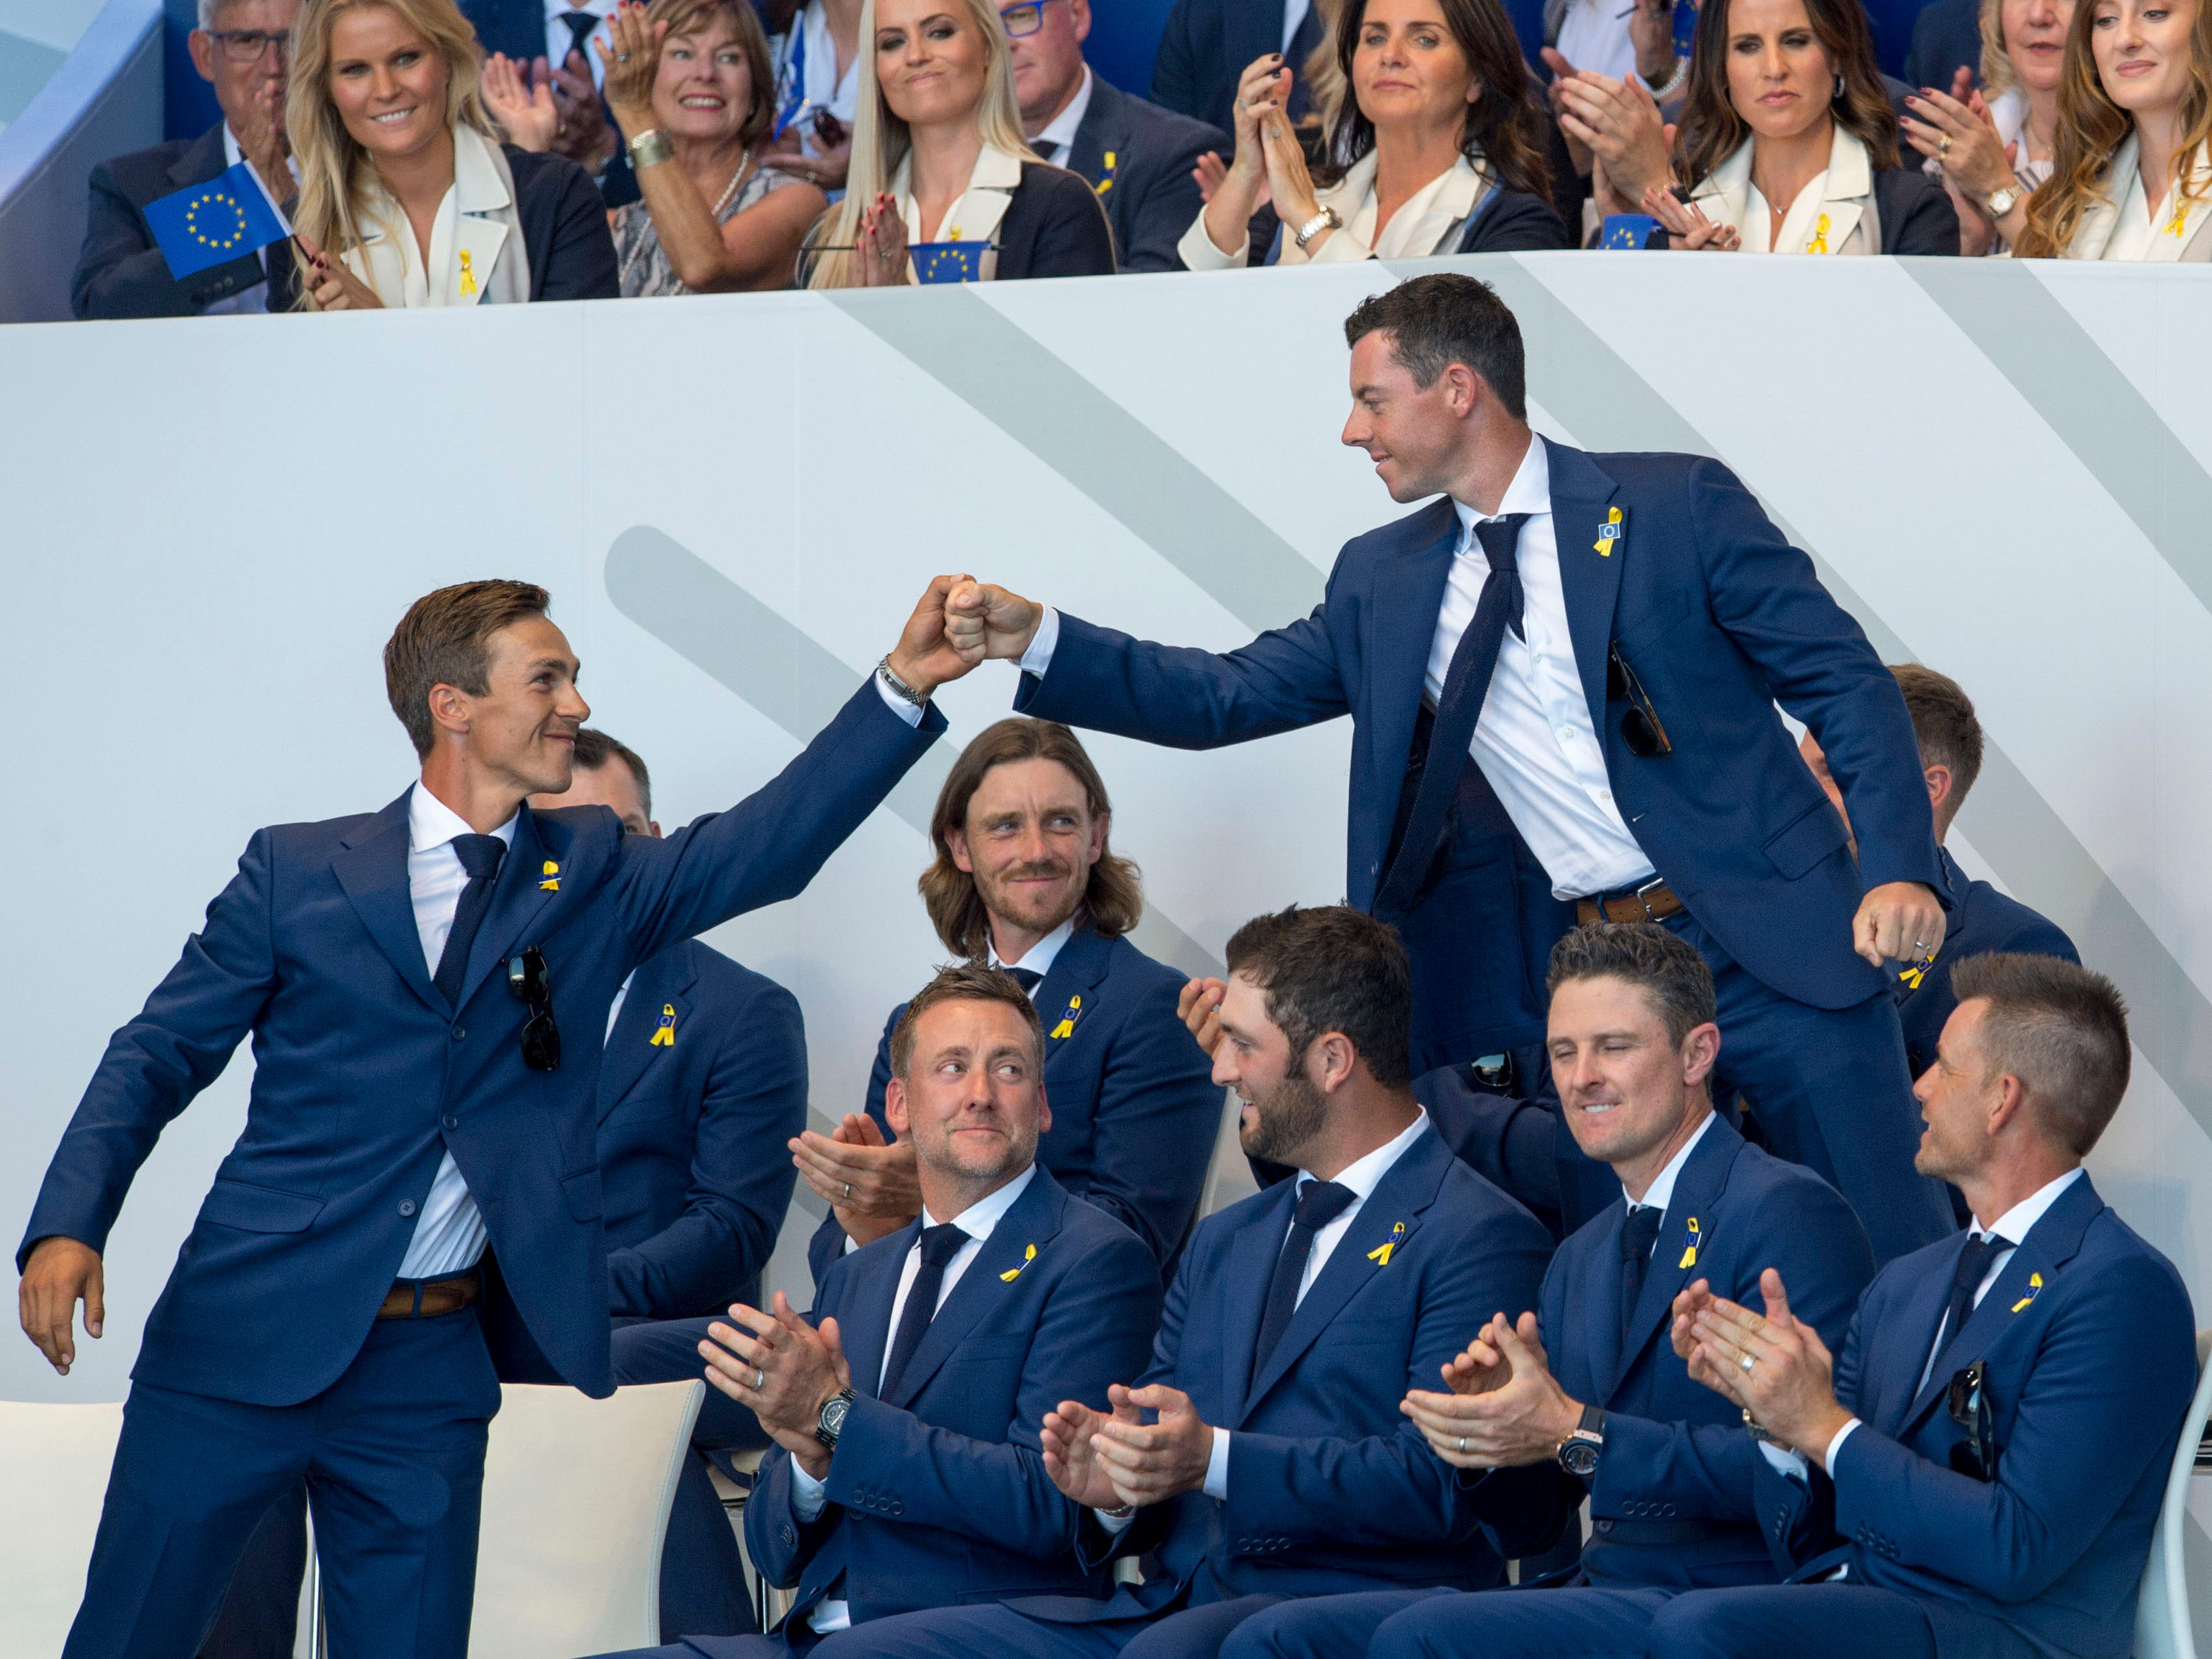 European team members Thorbjorn Olesen and Rory McIlroy fist bump after being announced to play together in the morning fourballs Ryder Cup Opening Ceremony.